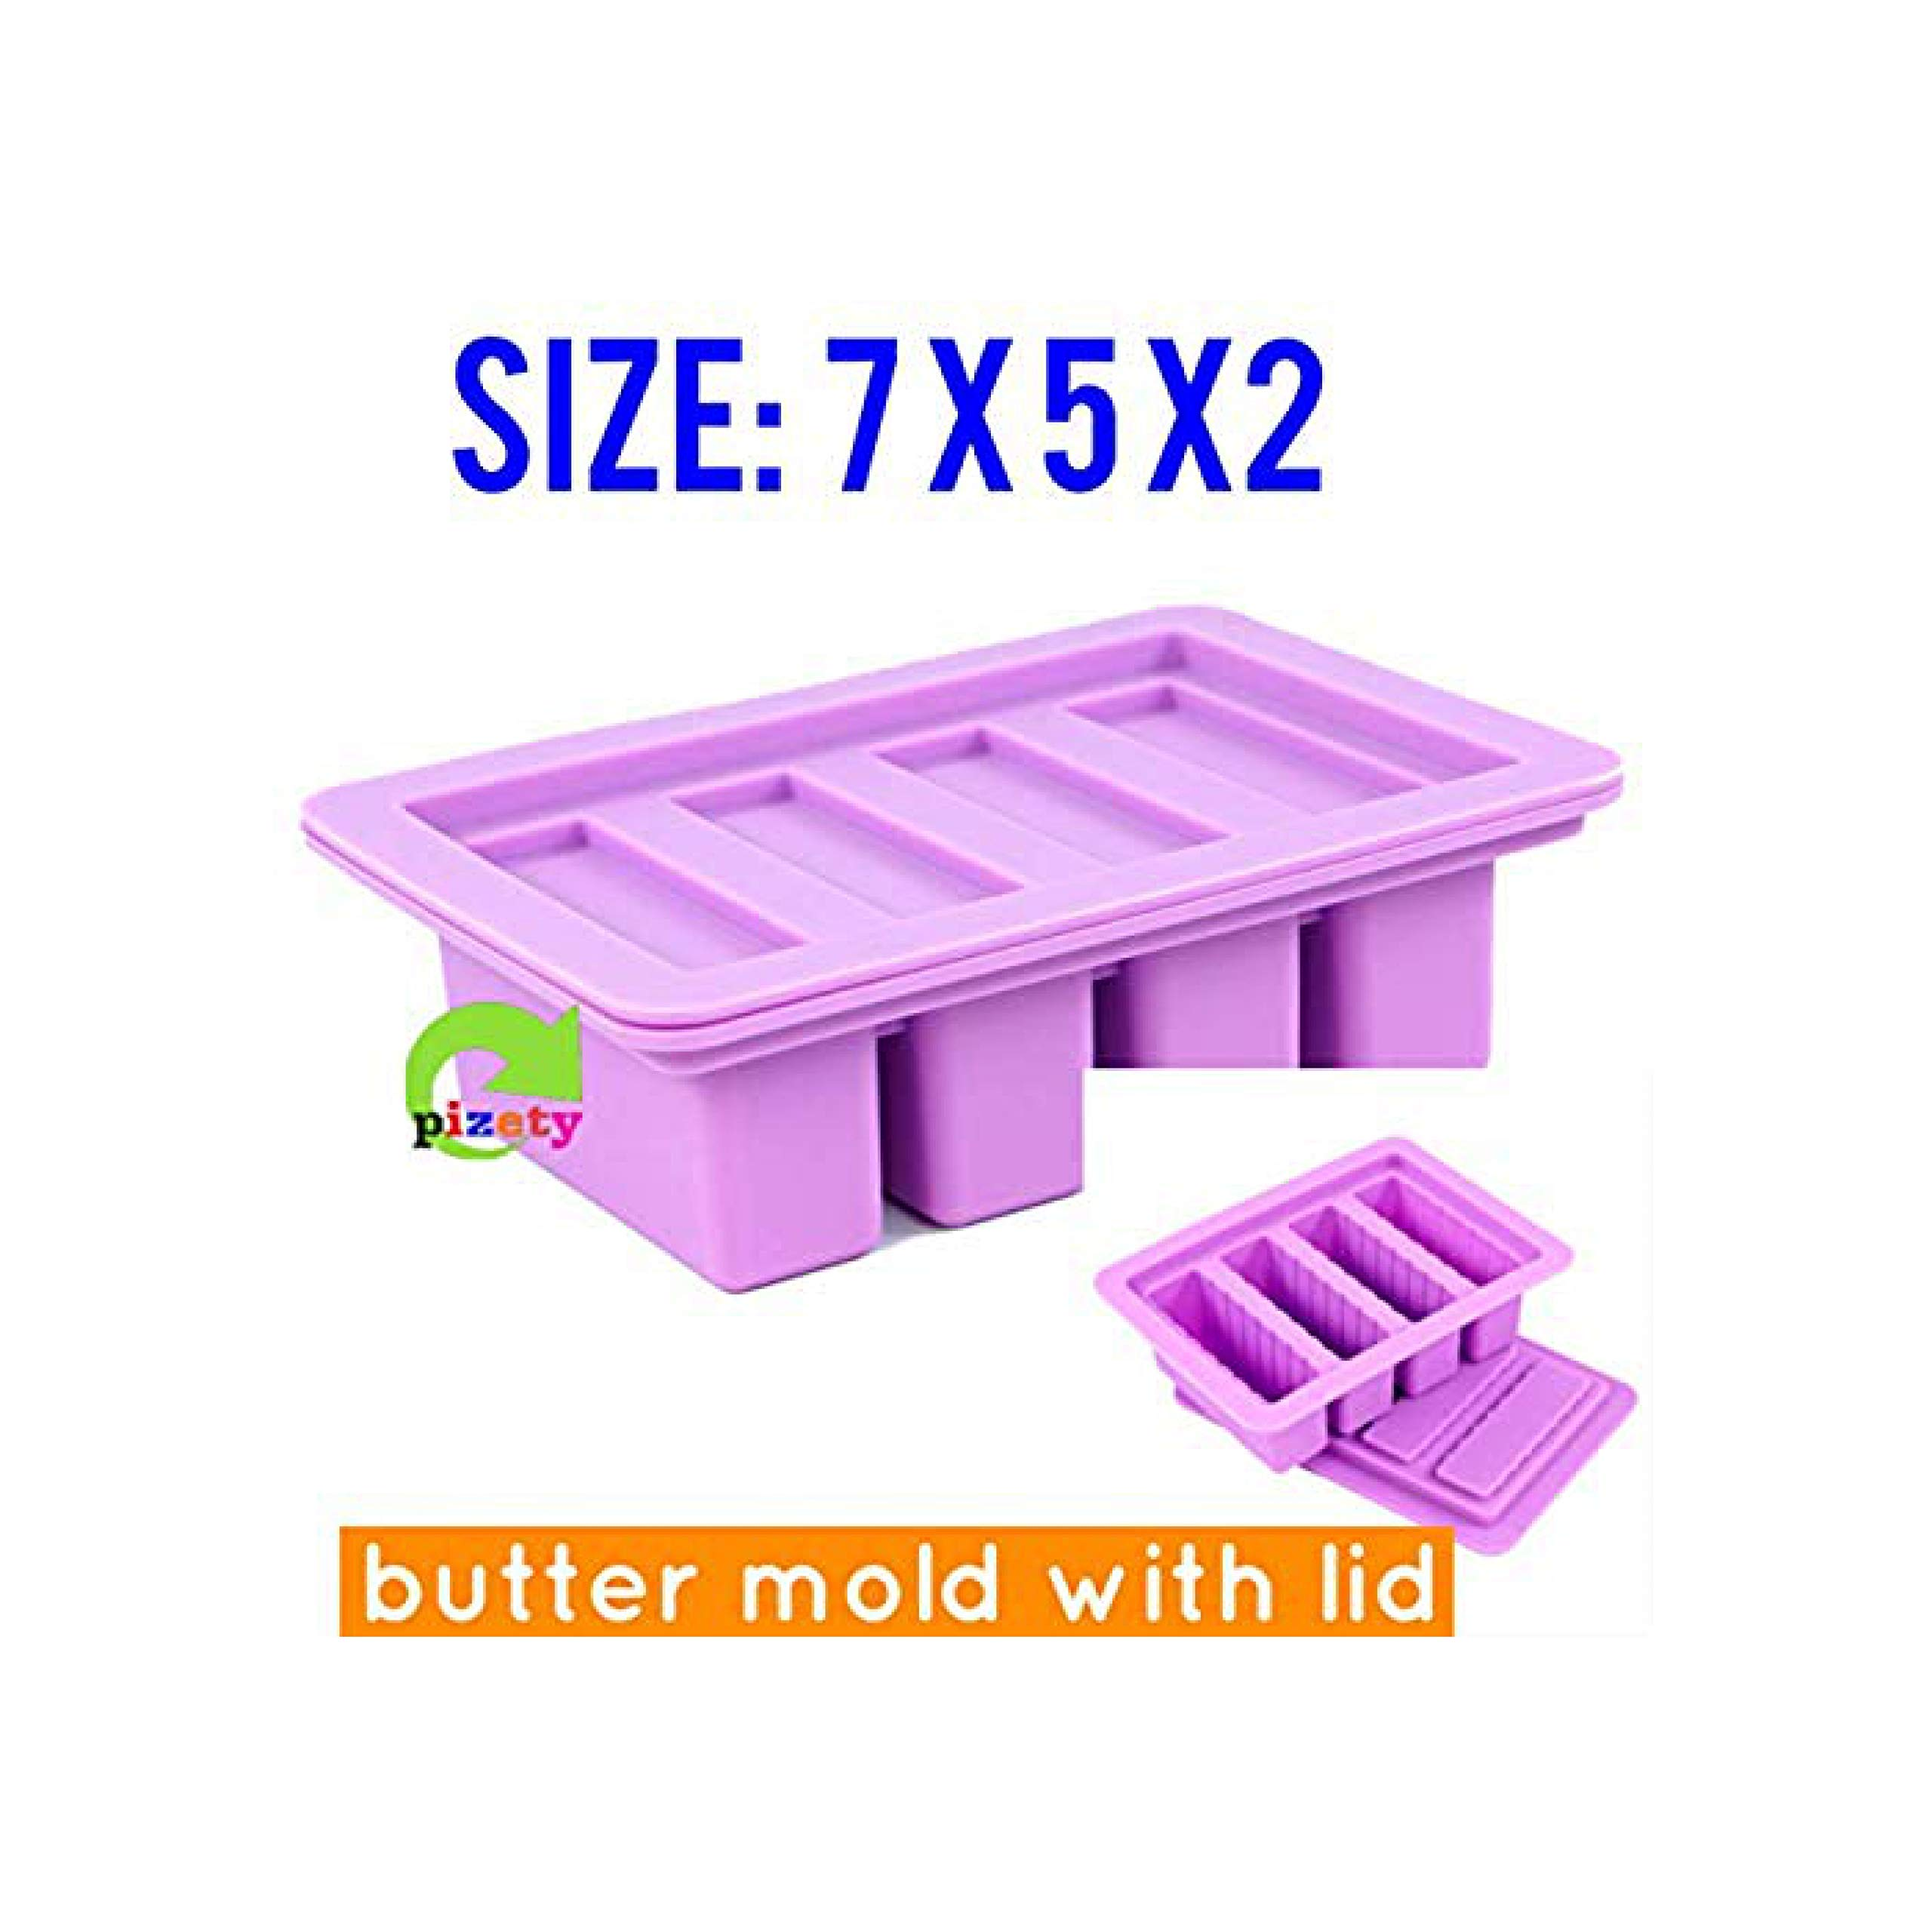 silicone butter mold 4 Cavities butter mold silicone (purple)